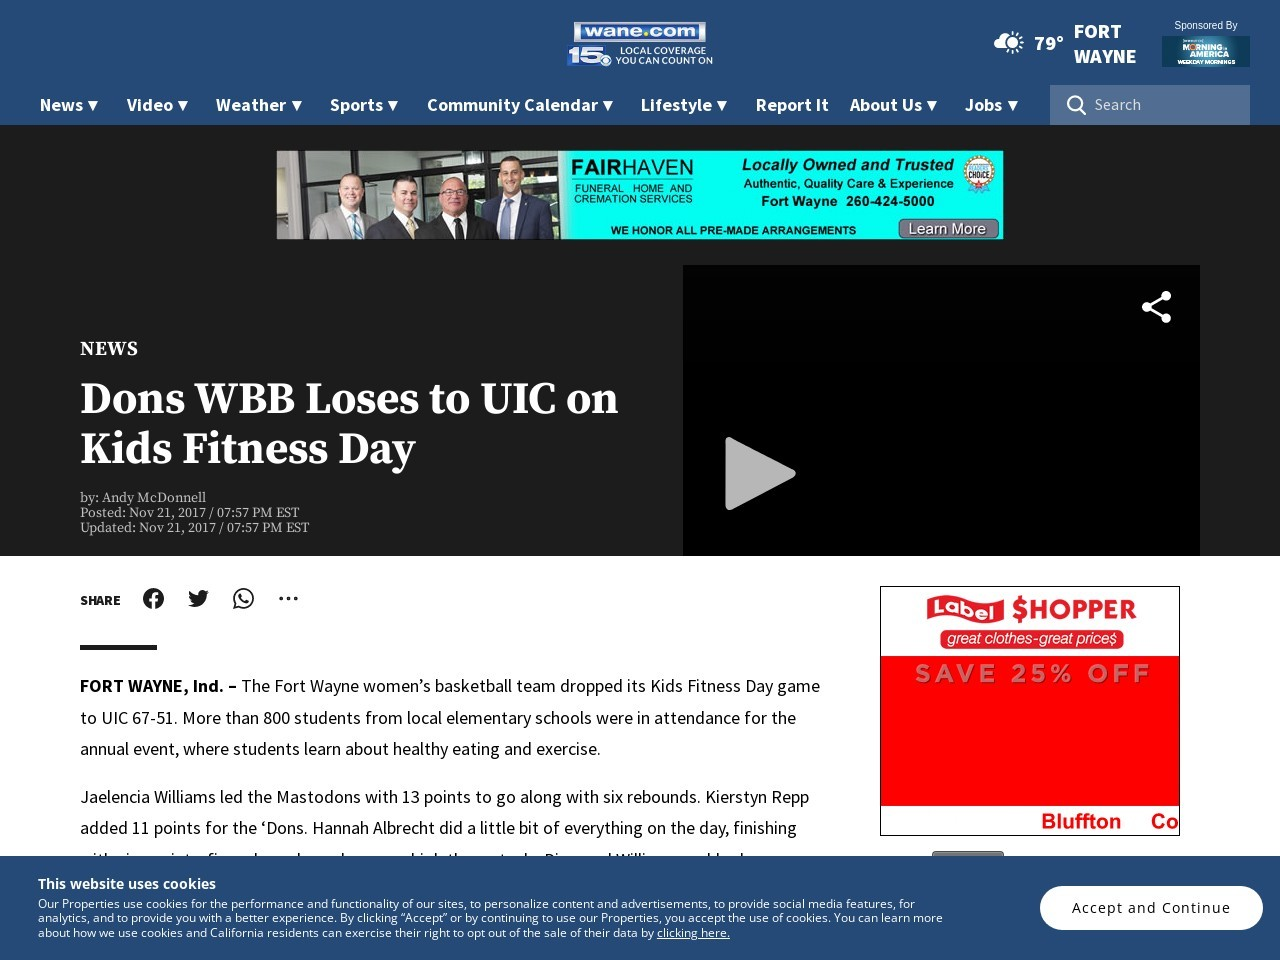 Dons WBB Loses to UIC on Kids Fitness Day